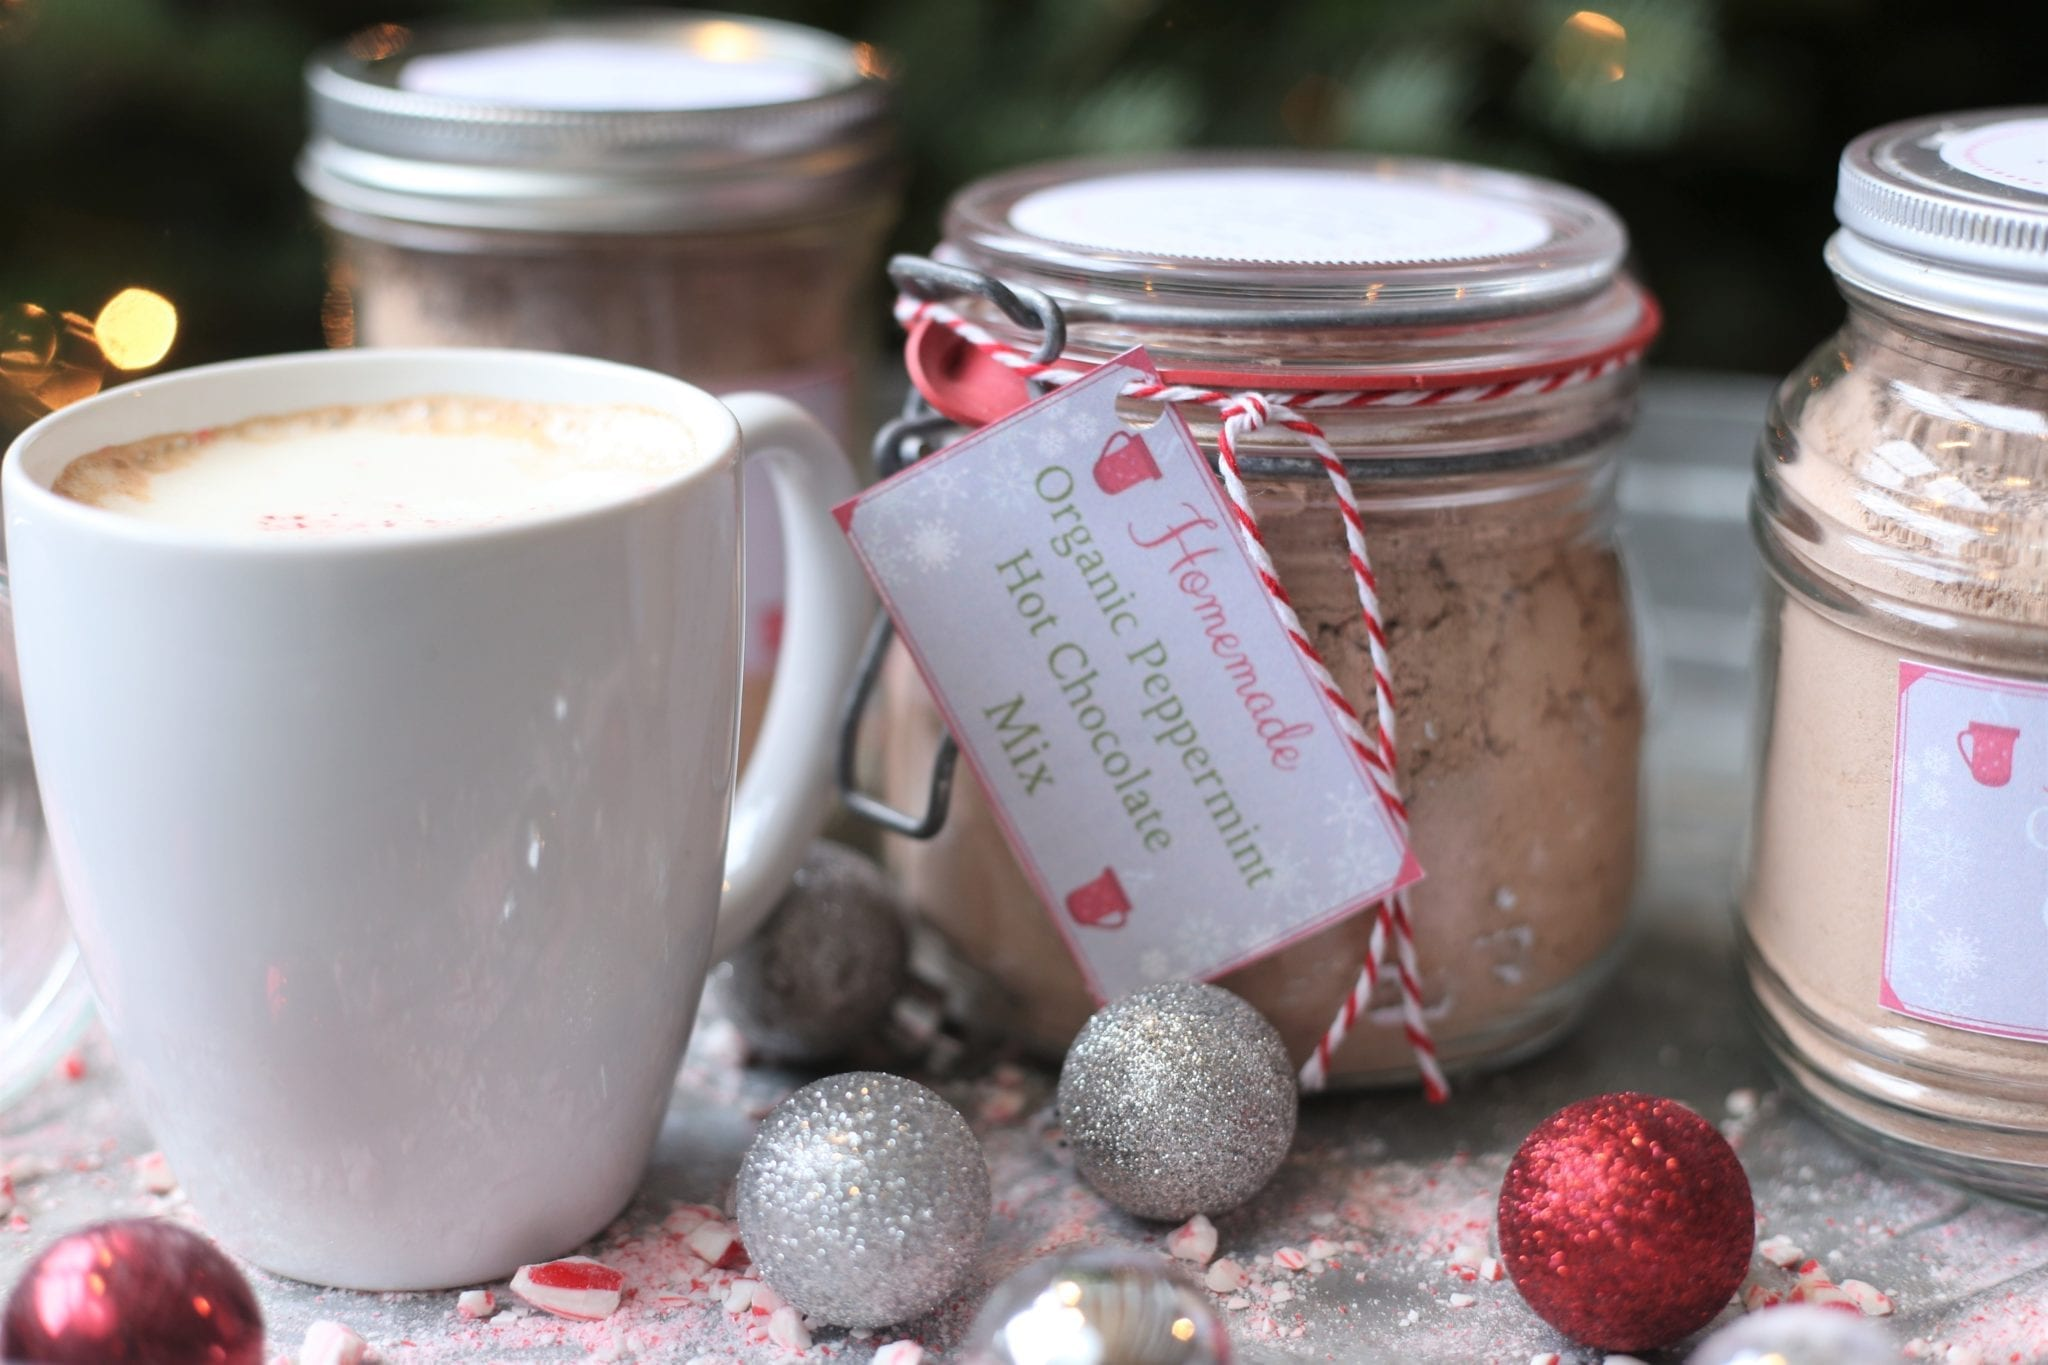 Homemade Organic Hot Chocolate Mix–A Great Gift